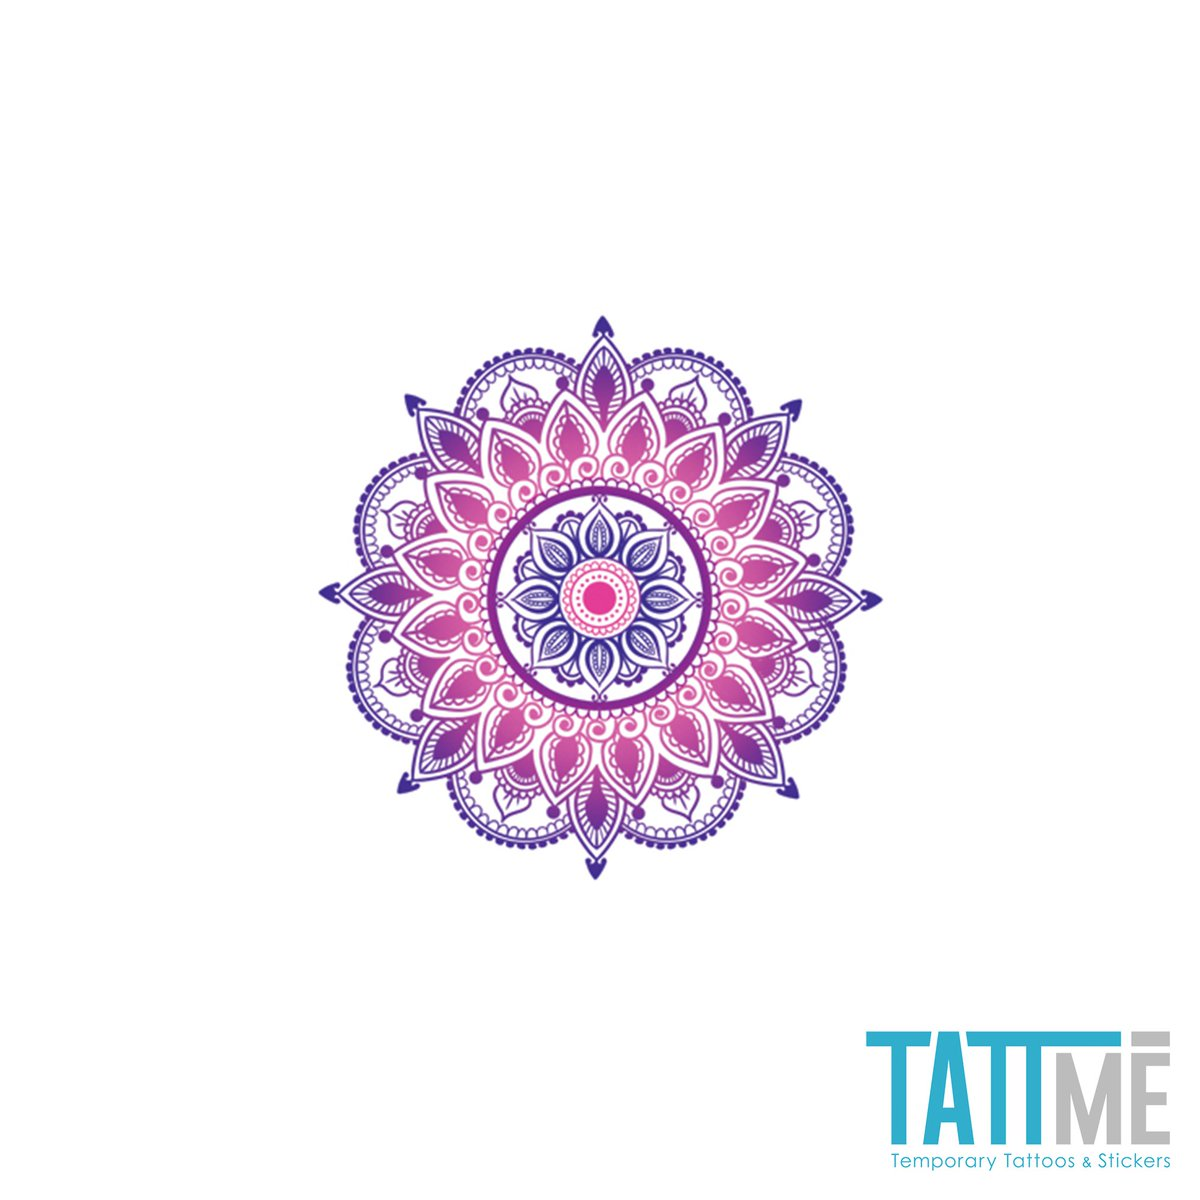 Tattme Tattoos On Twitter Mandala Is A Symbol In A Dream